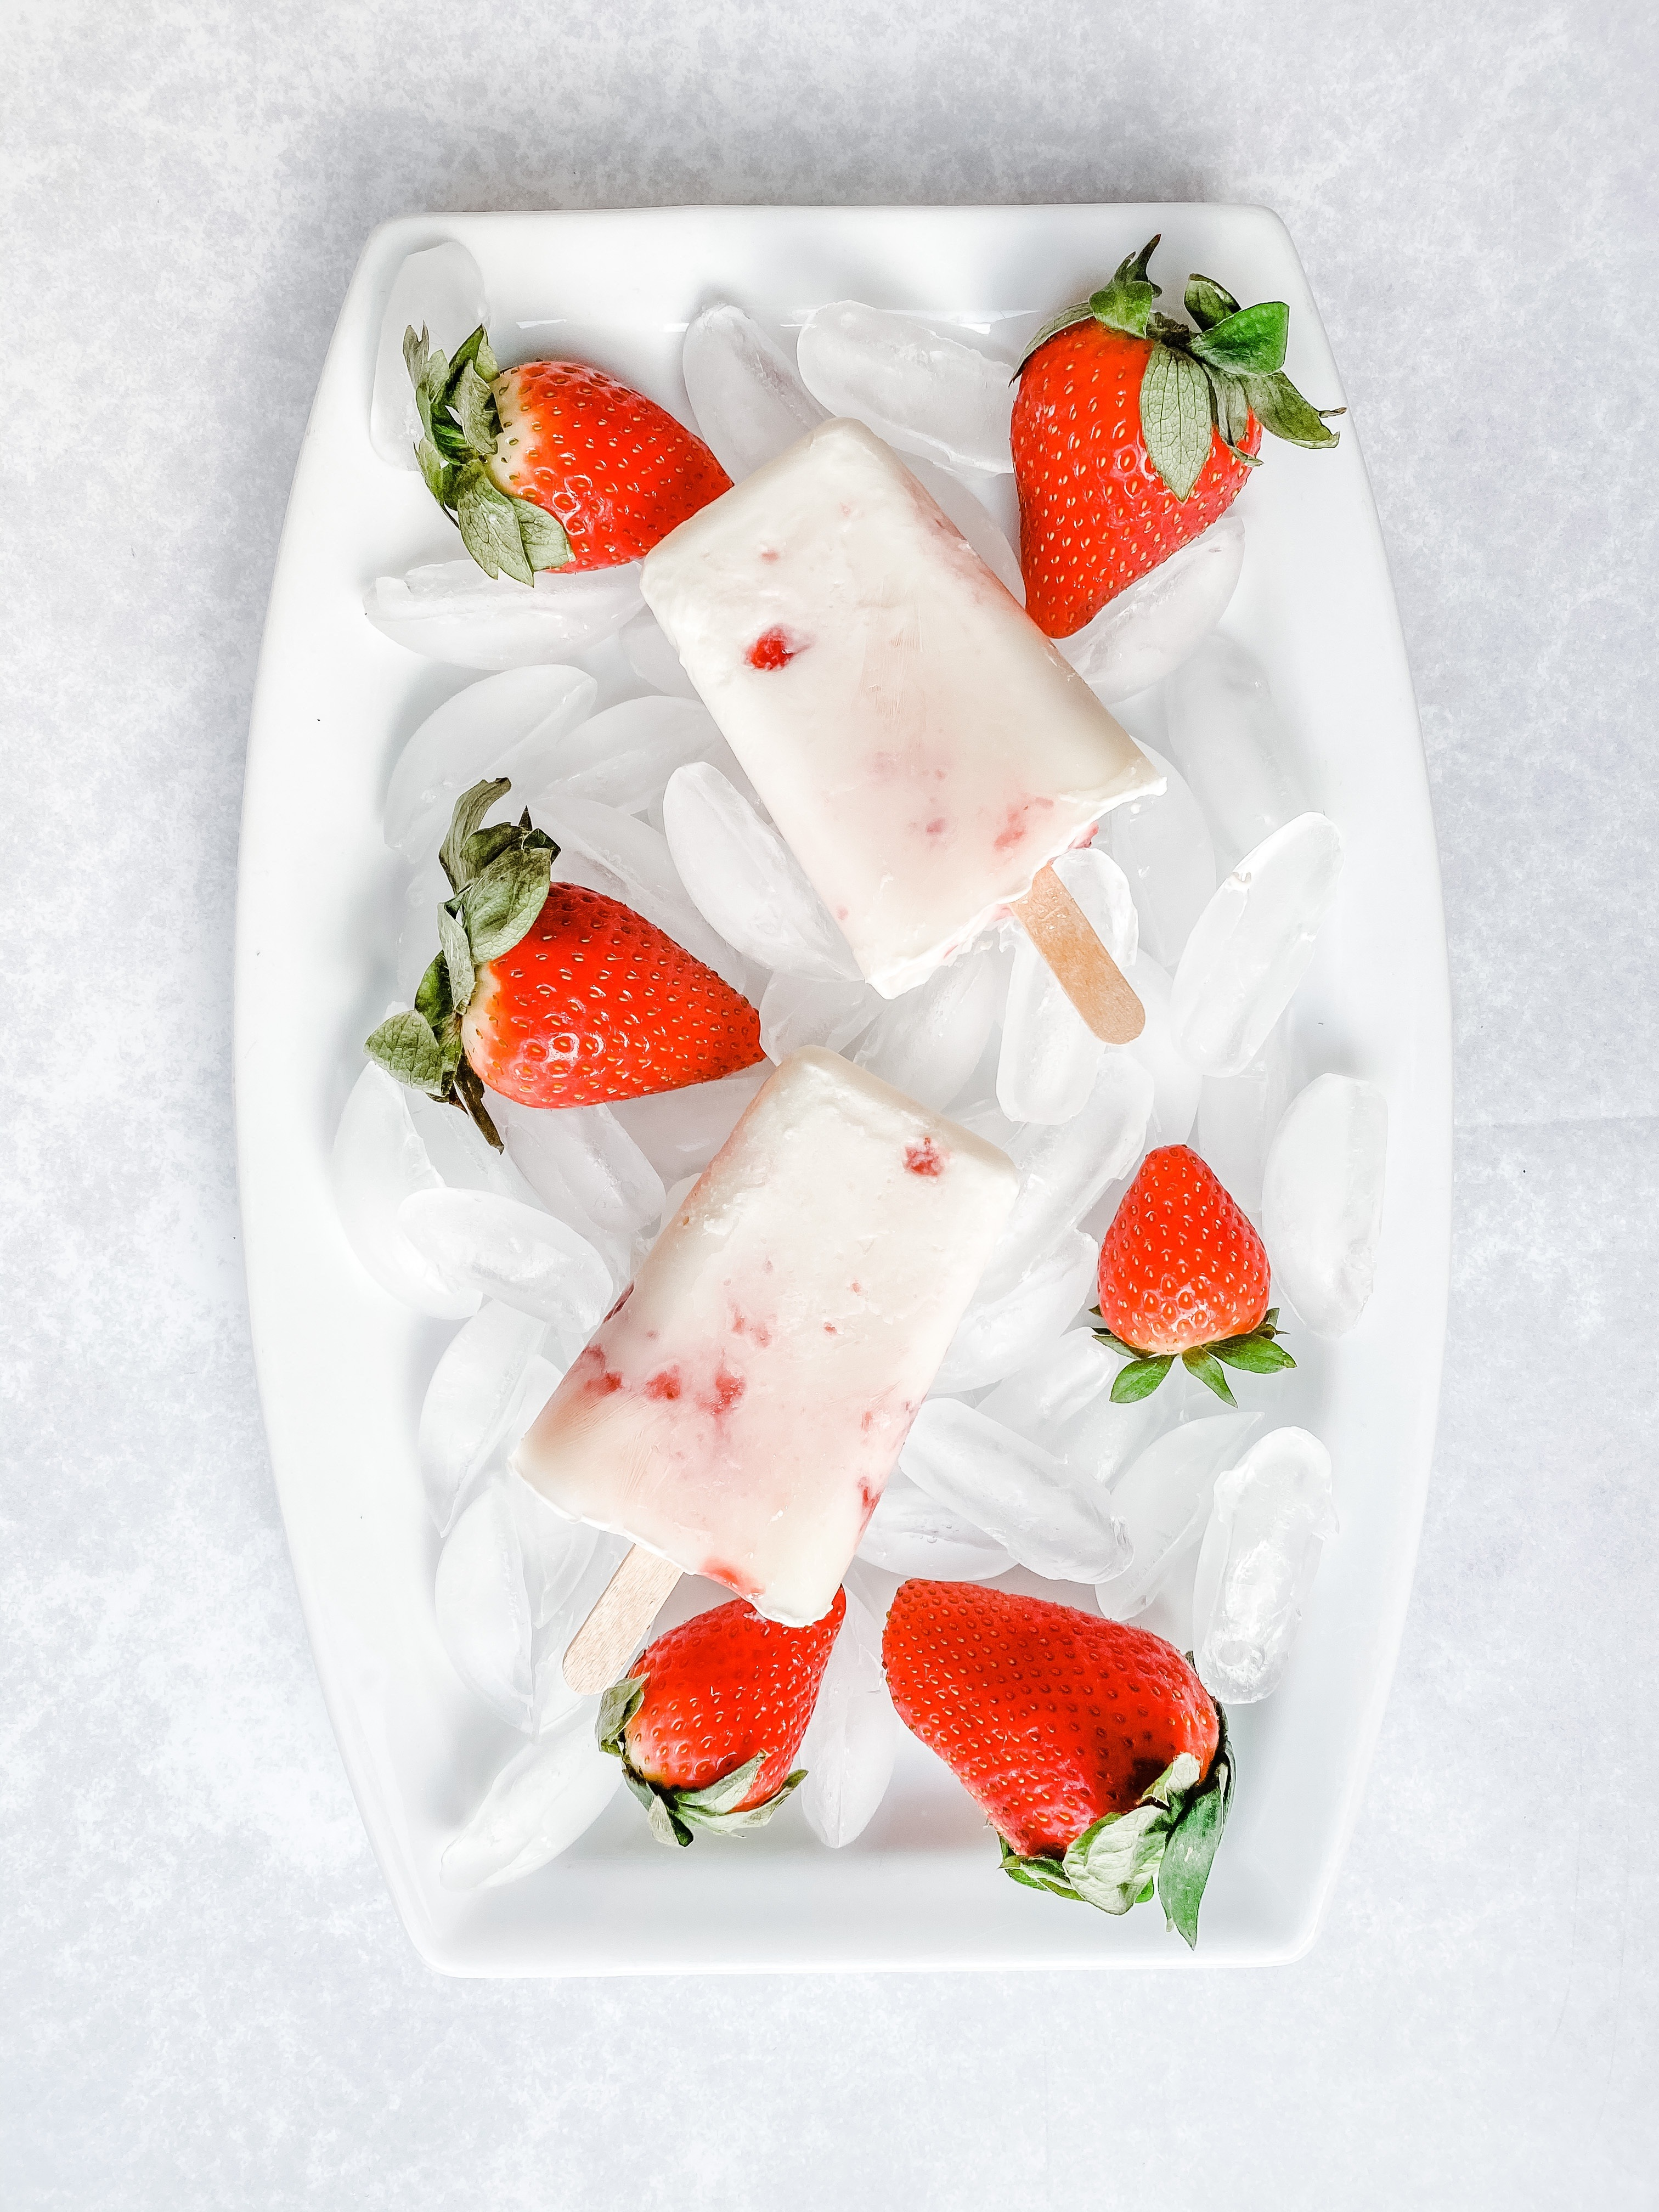 Two yoghurt and jam homemade ice lollies lie on some ice in a white dish and are surrounded by strawberries